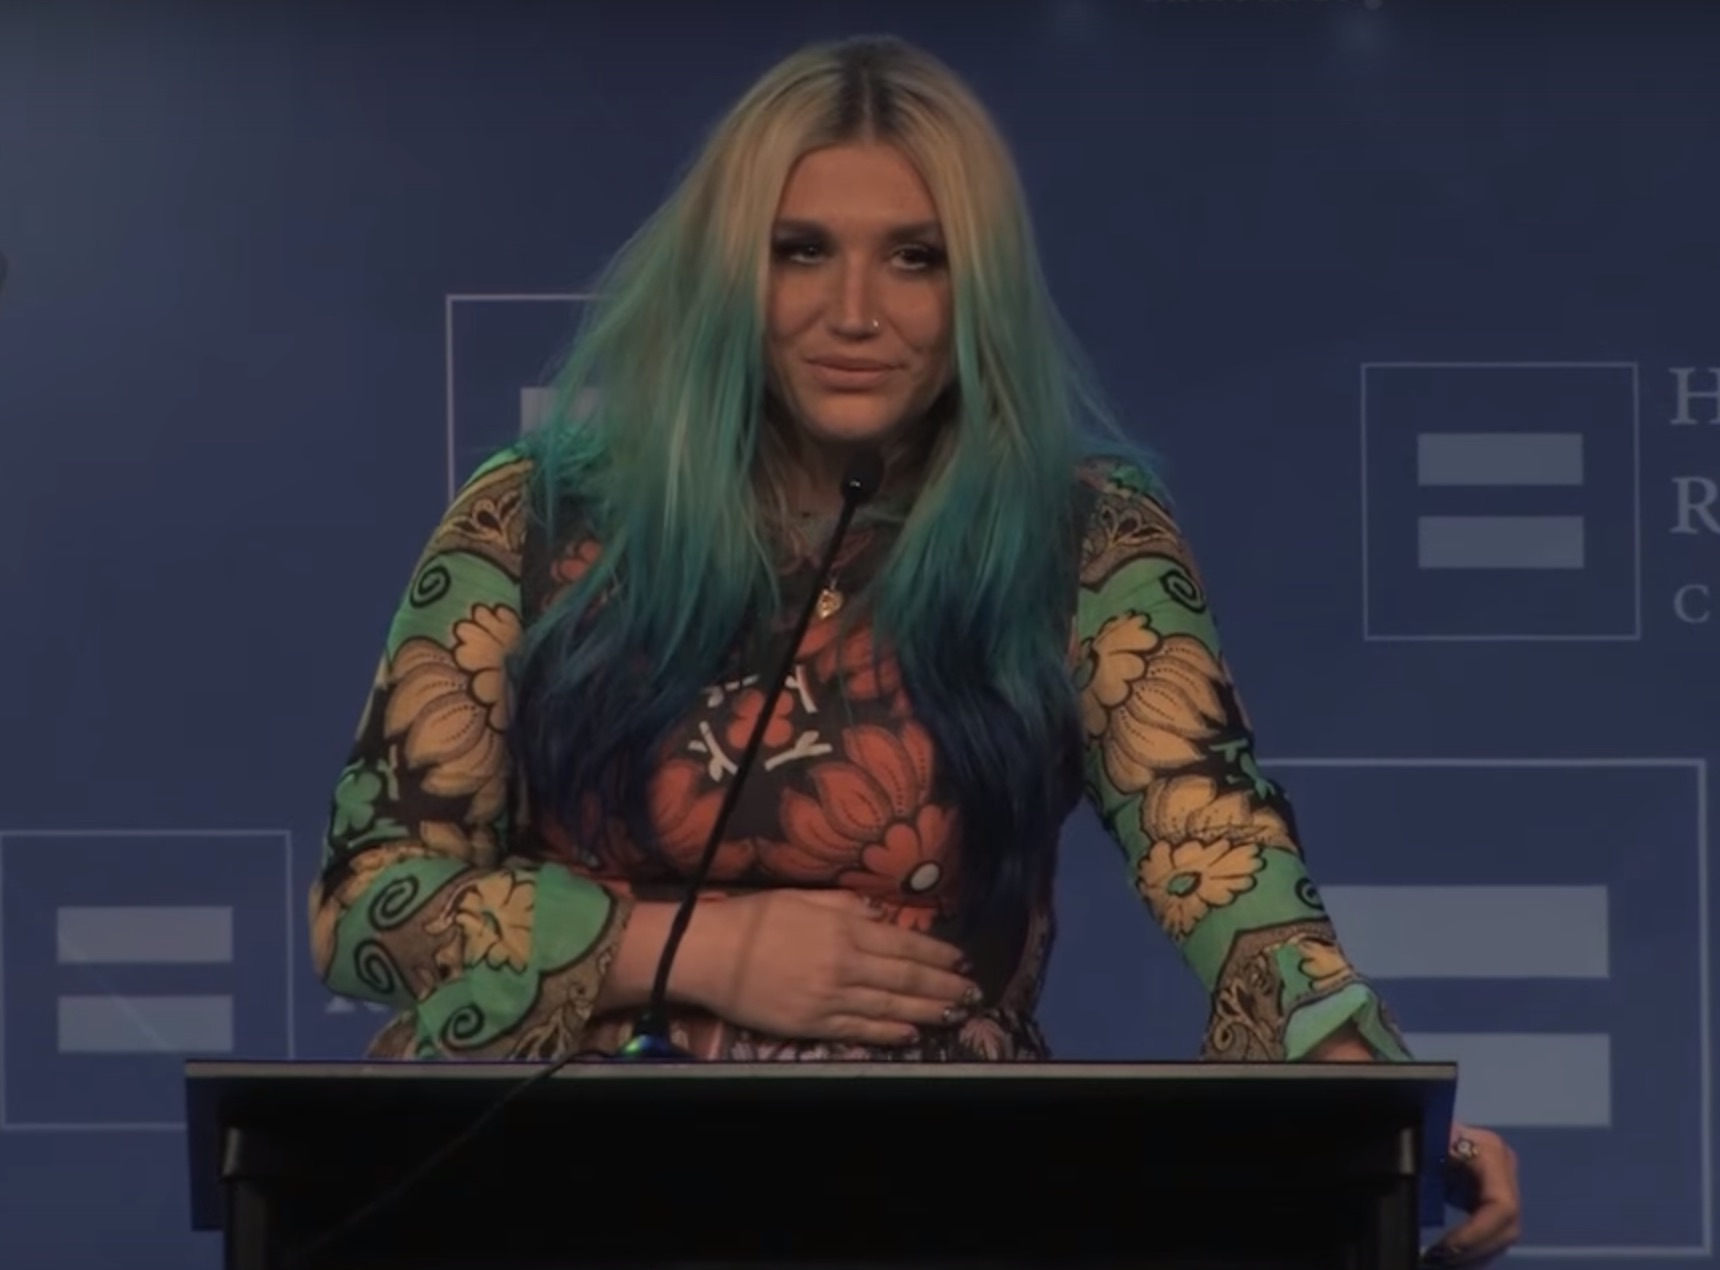 Kesha got emotional after receiving an award for supporting LGBT equality